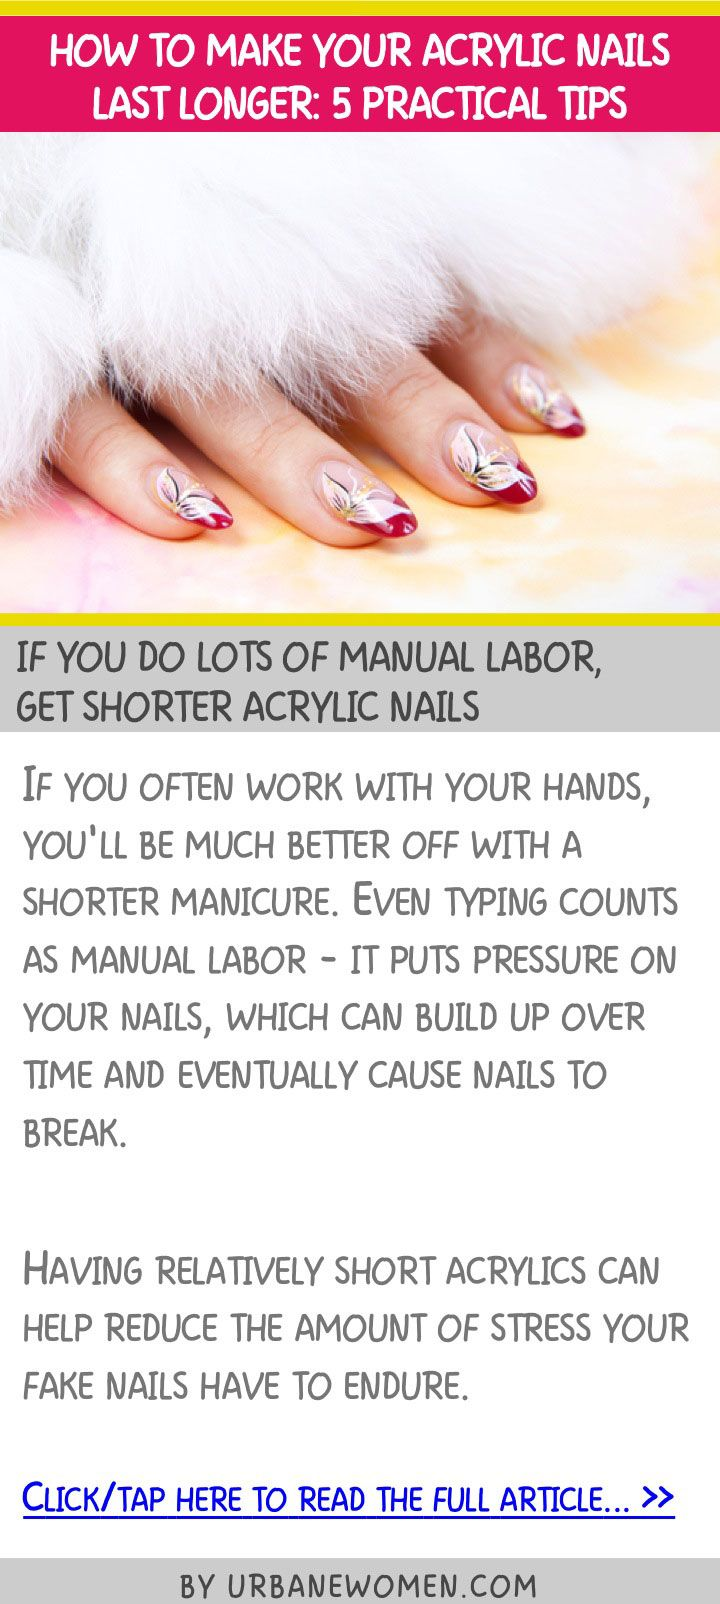 How To Make Your Acrylic Nails Last Longer 5 Practical Tips Short Acrylic Nails Acrylic Nails Nail Care Tips